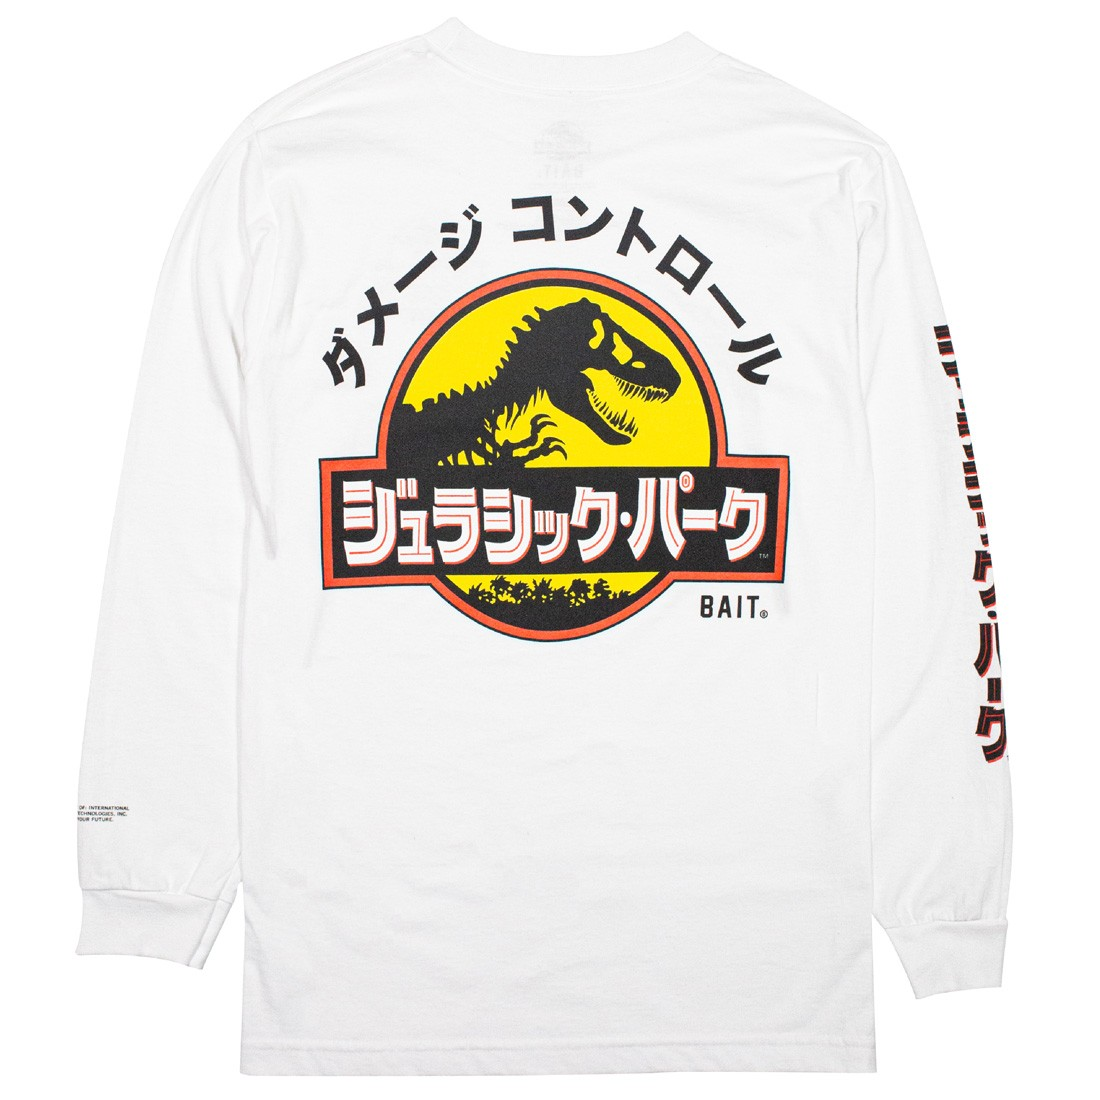 BAIT x Jurassic Park Men Damage Control Tee Long Sleeve (white)